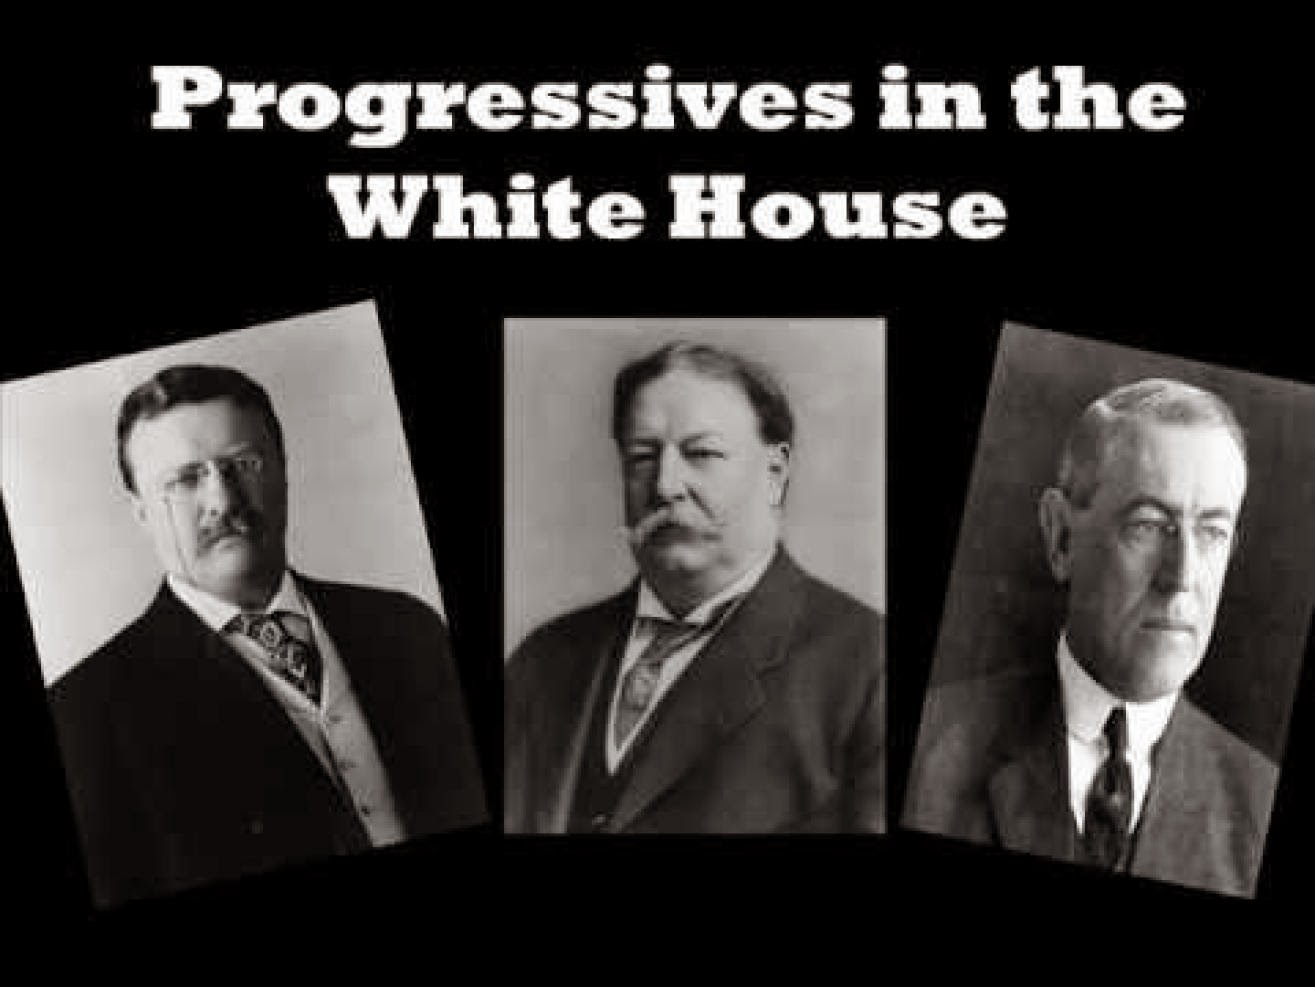 discussion on progressive era presidents View homework help - discussion 5 progresive era t roosevelt from amh 2020 at santa fe college 2 how did the federal government tackle the problem of monopolies and.